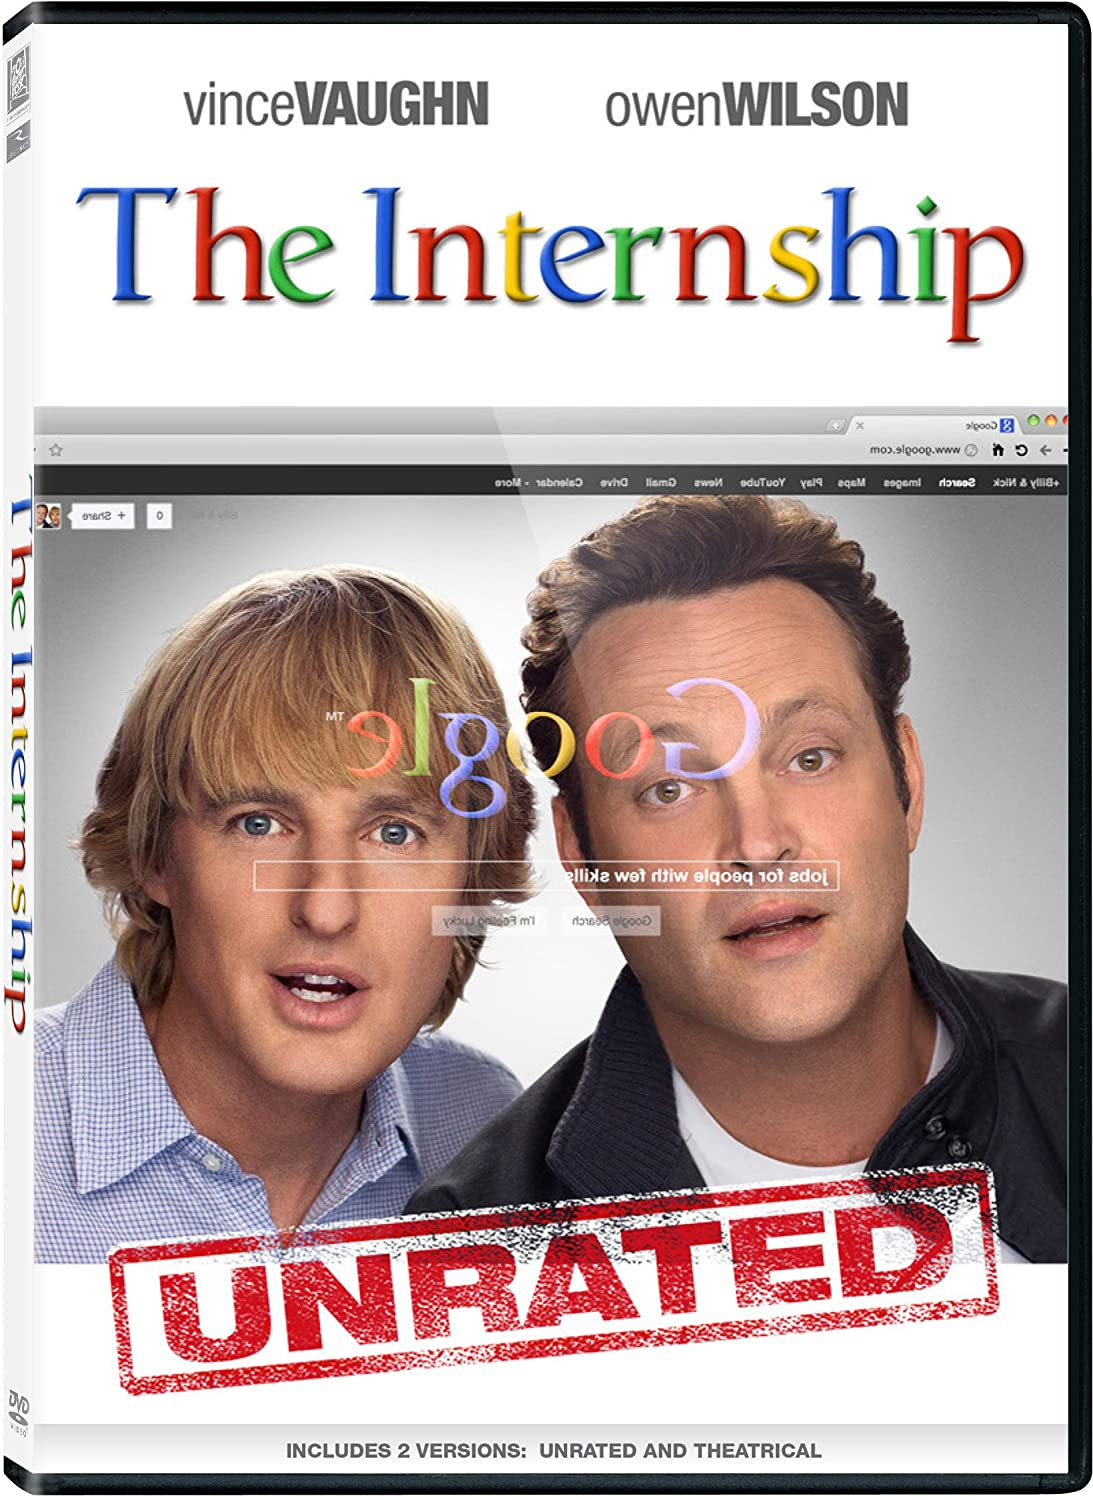 The internship dvd photo